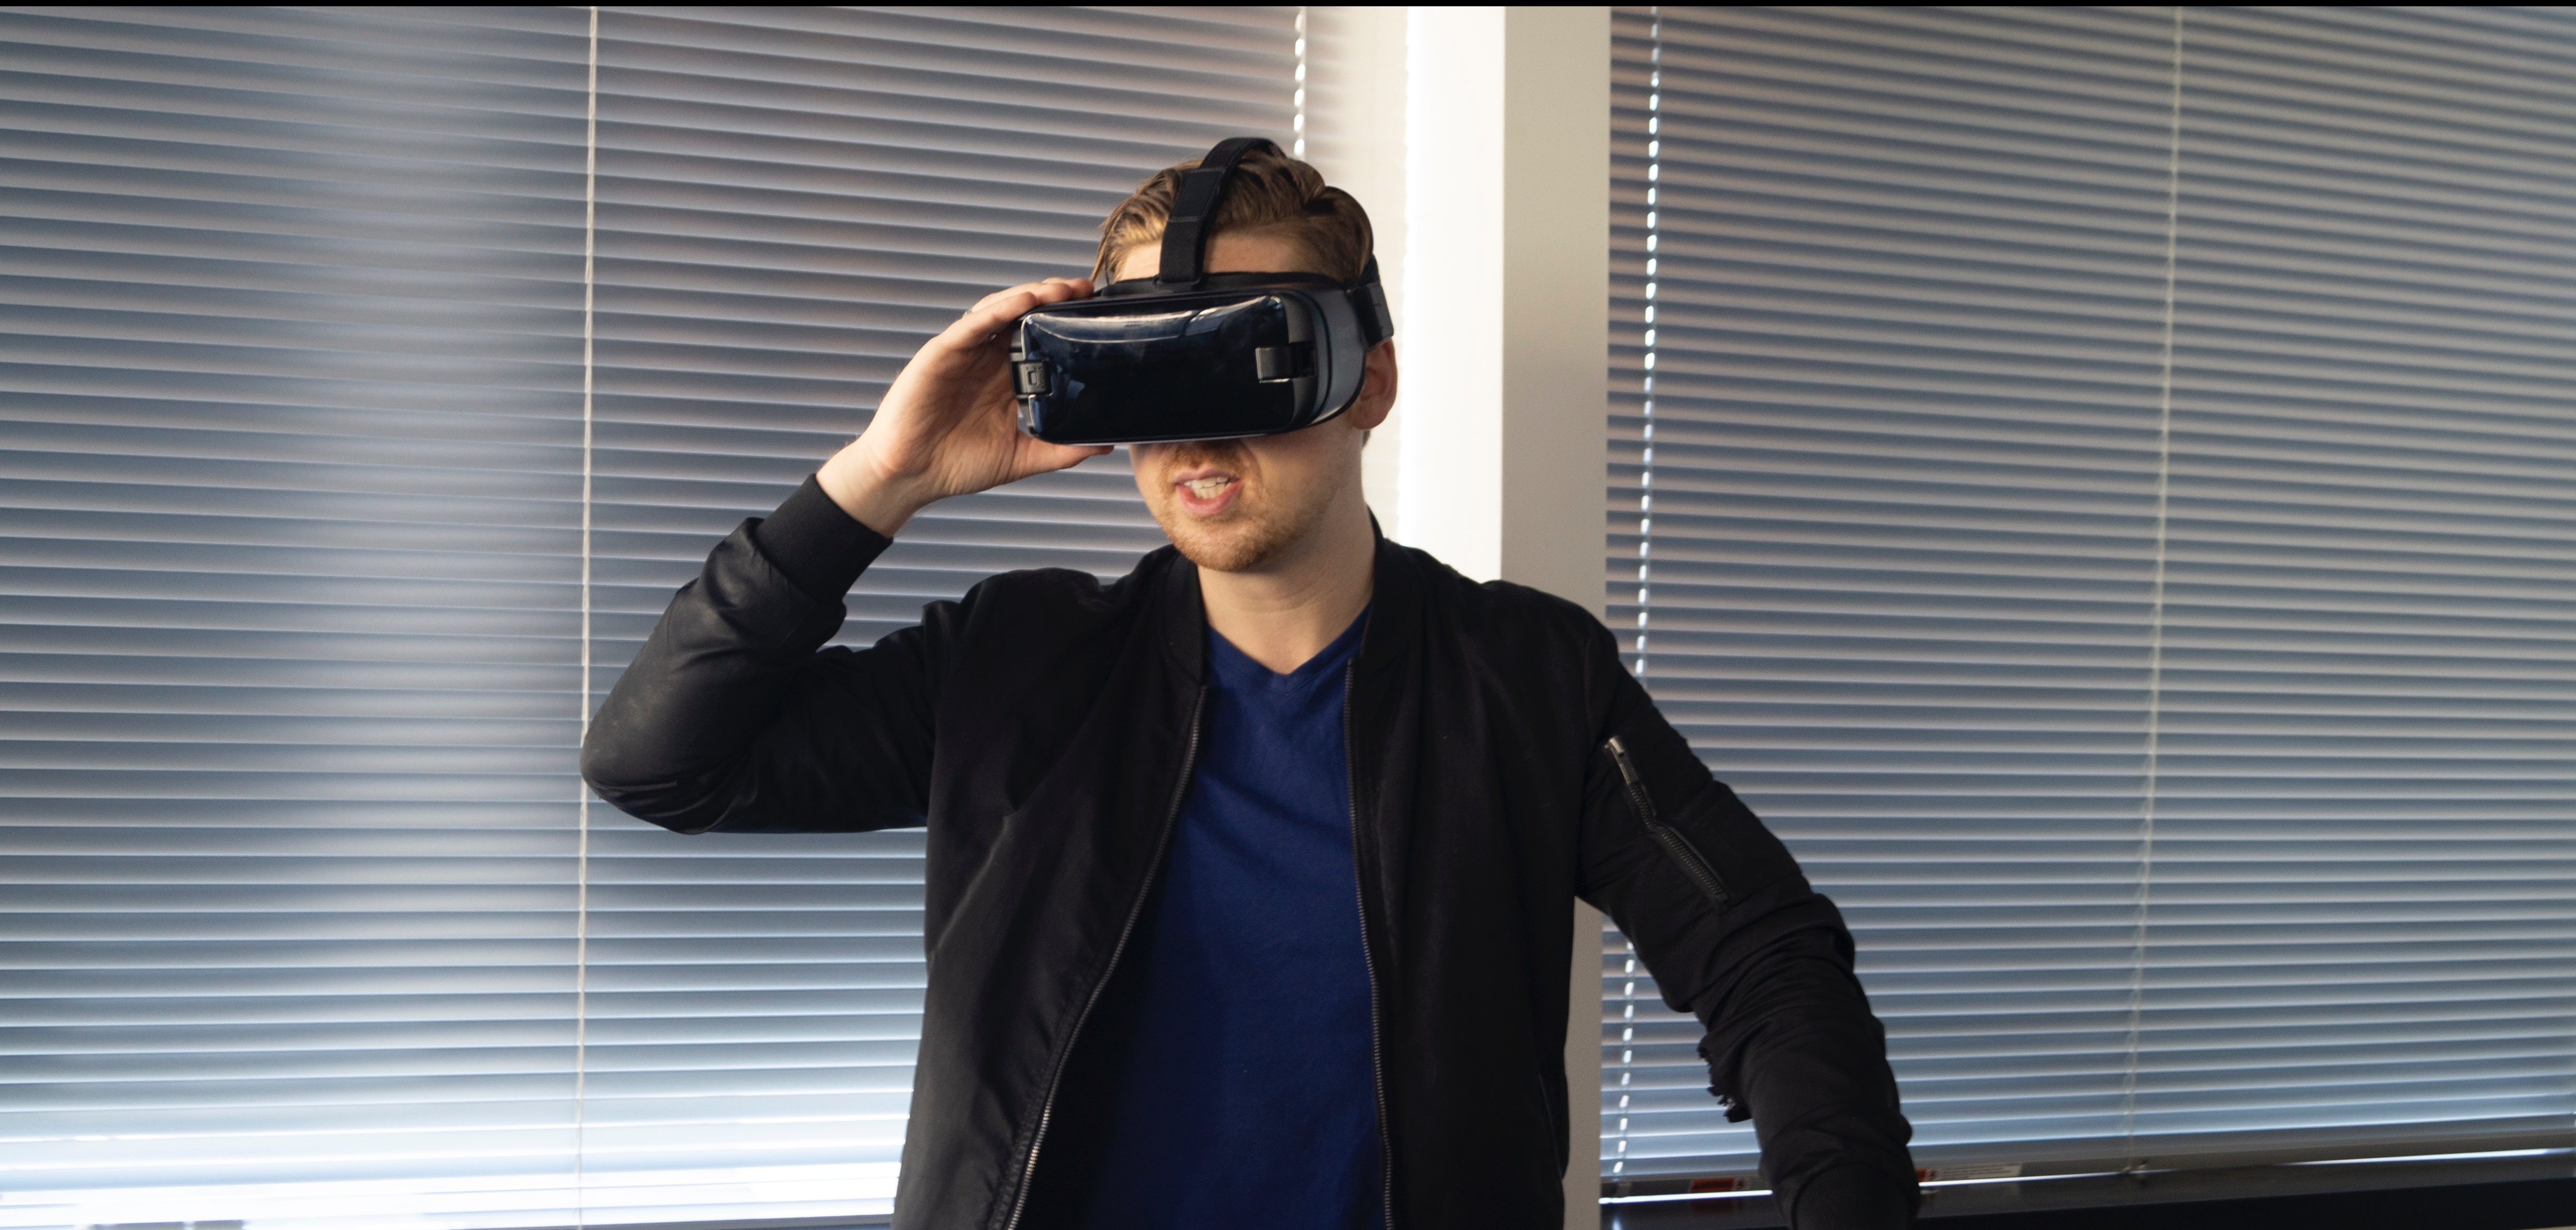 Read more about the article VR in 2019 | What We Can Expect This Year